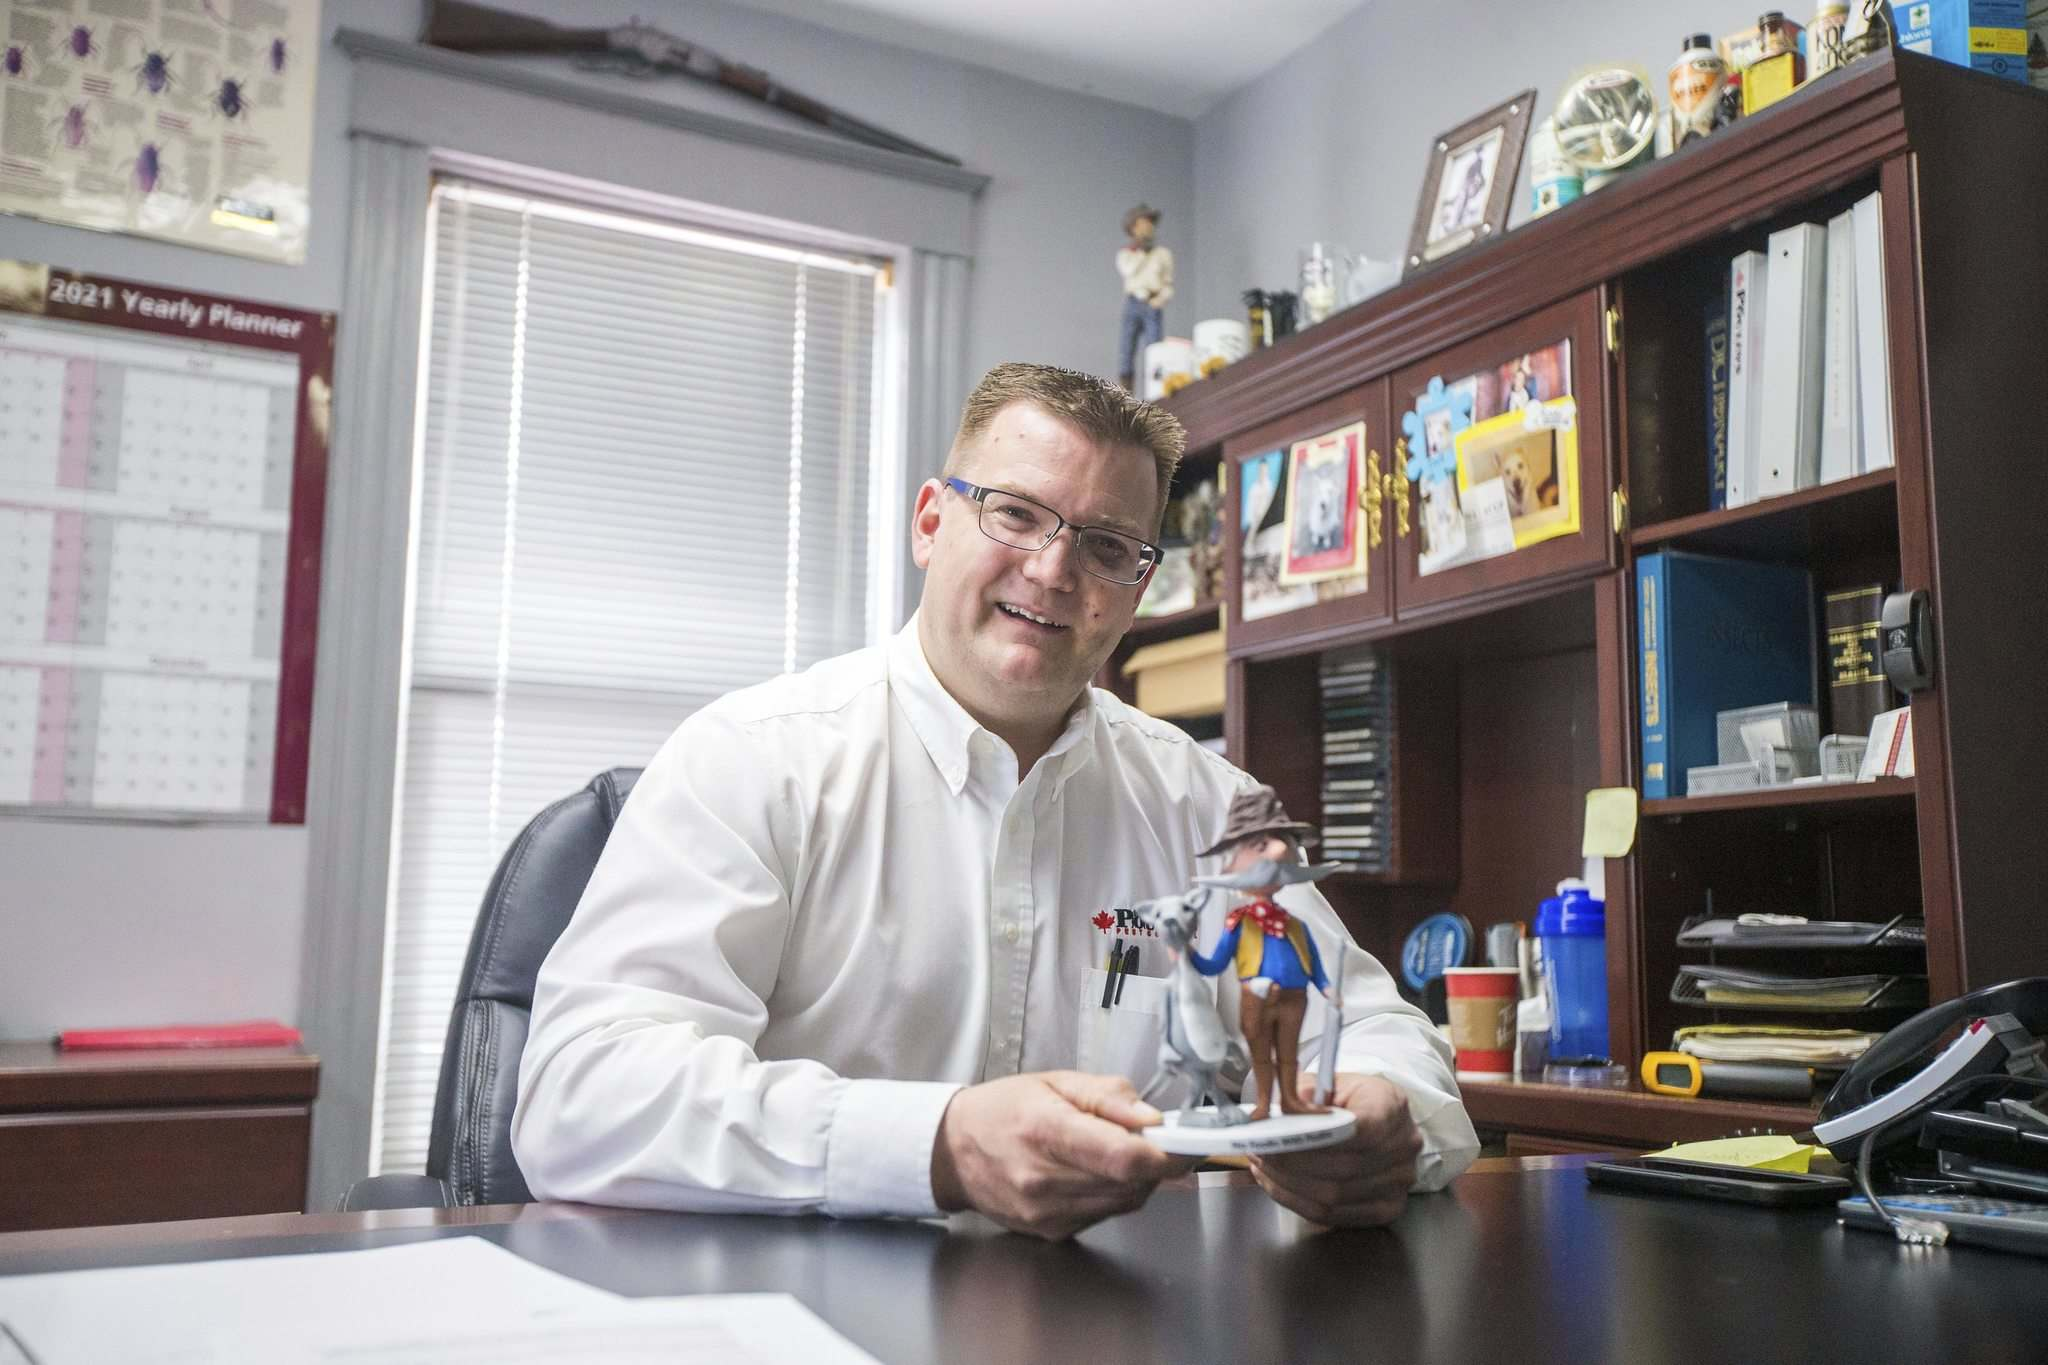 Lincoln Poulin, president of Poulin's Pest Control, took over control of the firm's day-to-day operations in 2016. His office is home to a colourful assortment of pest memorabilia. (Mikaela MacKenzie / Winnipeg Free Press)</p>